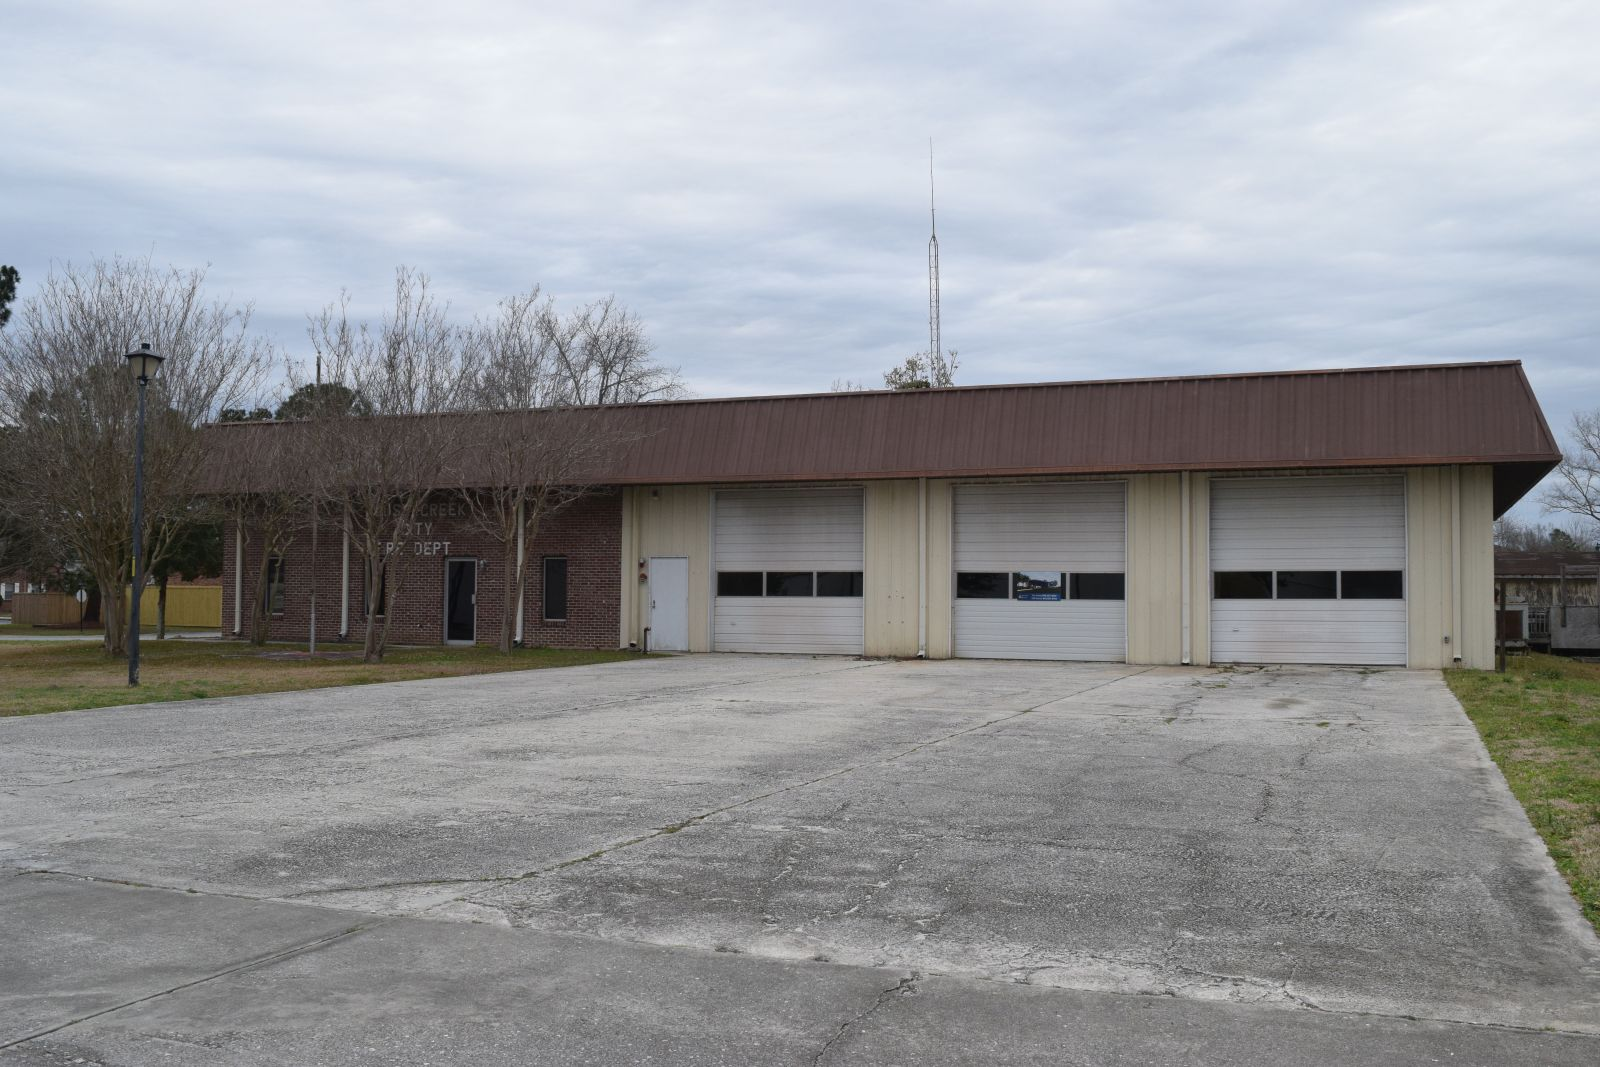 One major location for possible investment in Goose Creek is the former fire station on Button Hall Avenue, which is under contract with the real estate company Cityvolve. (Photo/Patrick Hoff)